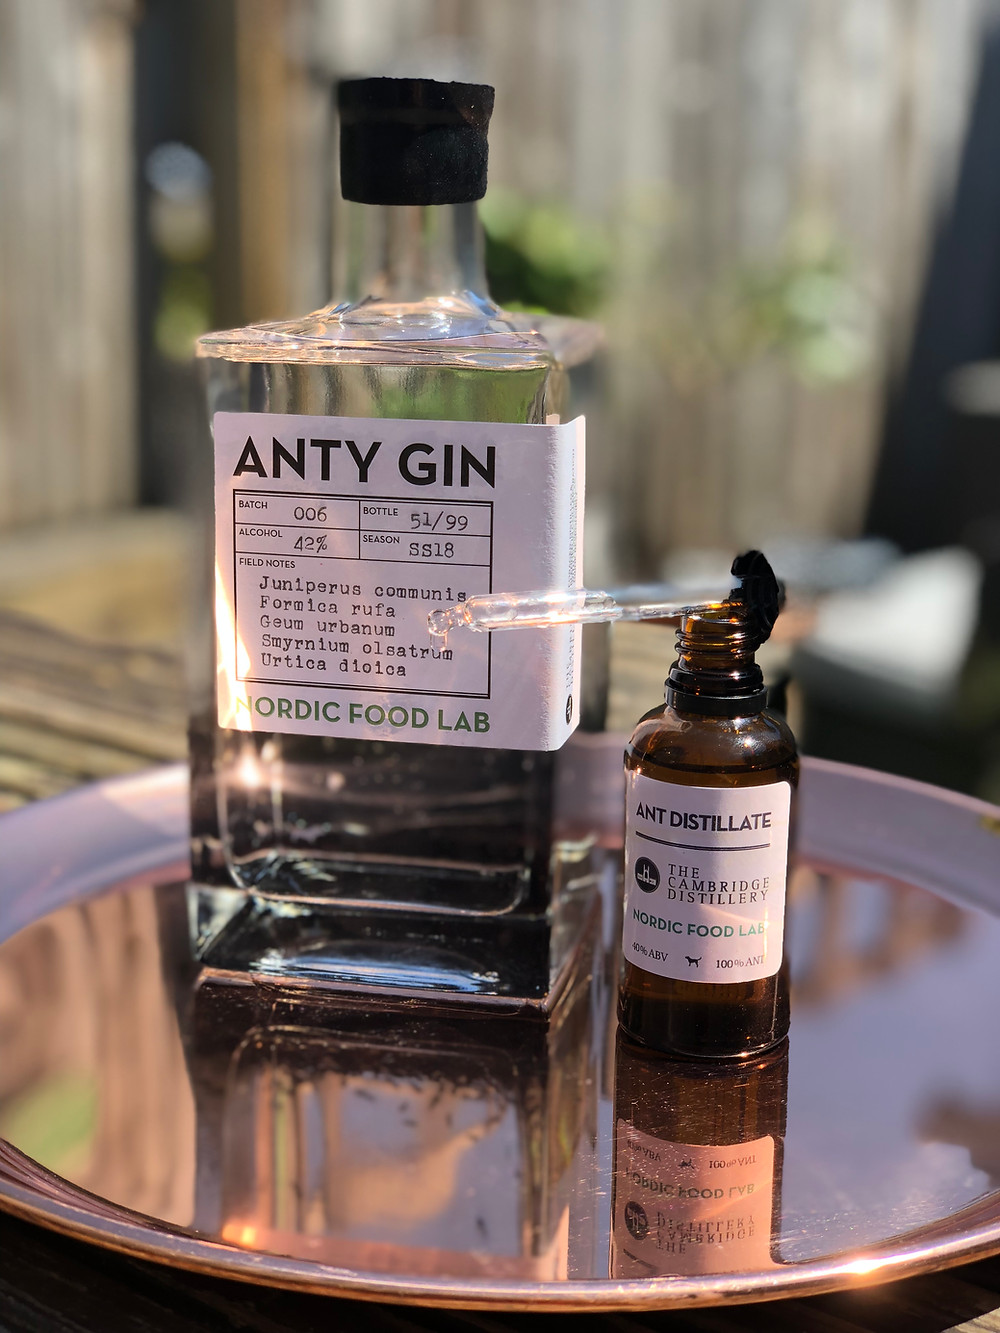 Anty Gin Blind Pig Heswall